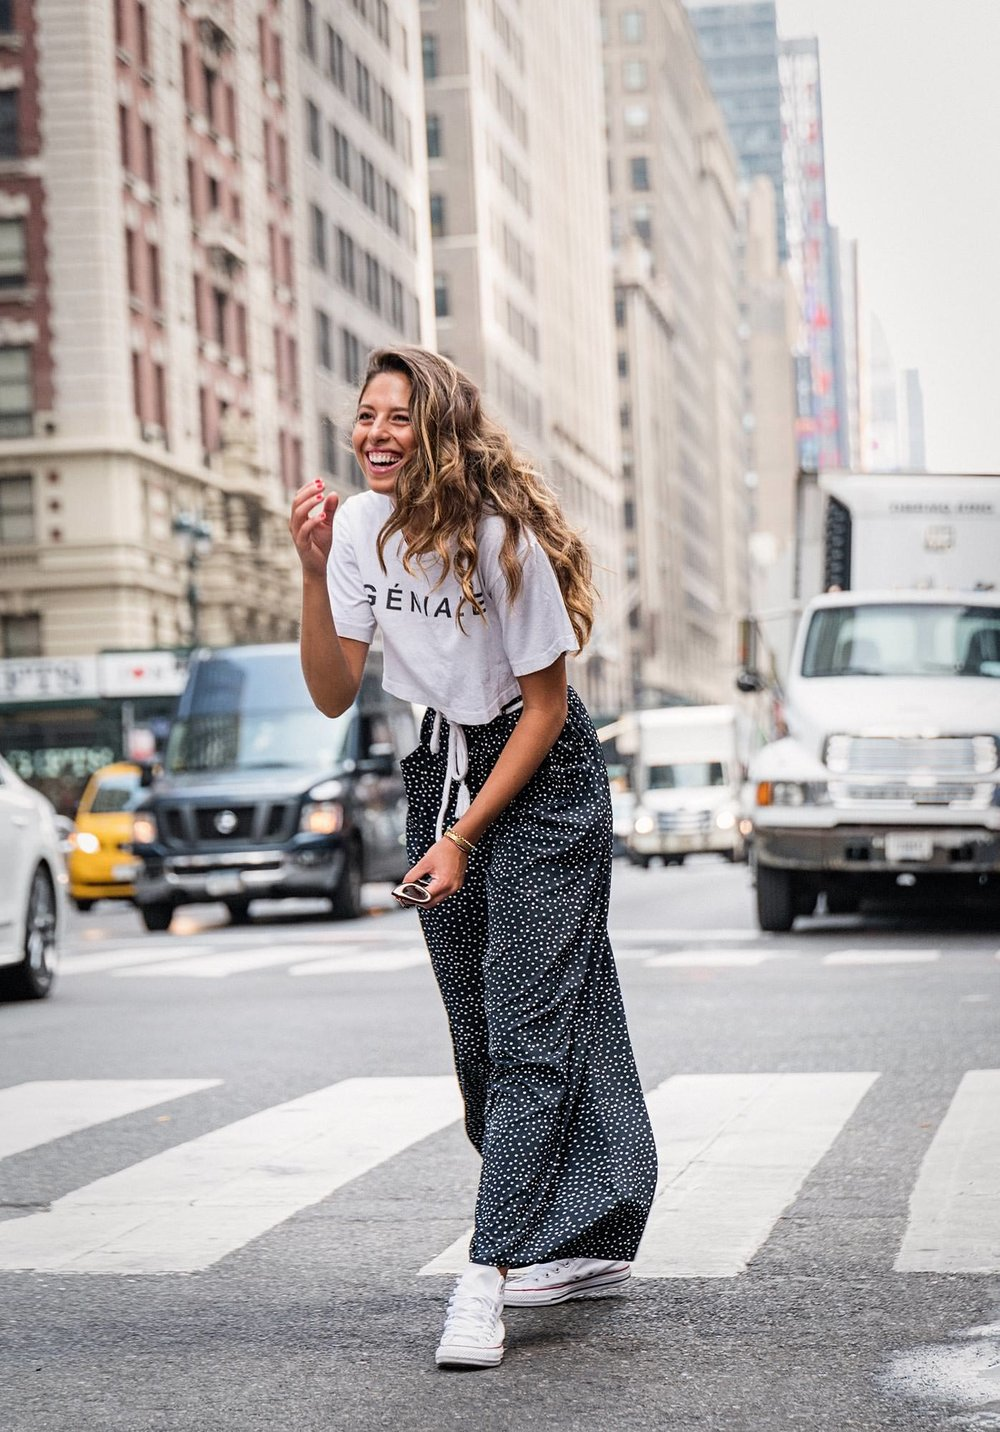 Happy Model in New York